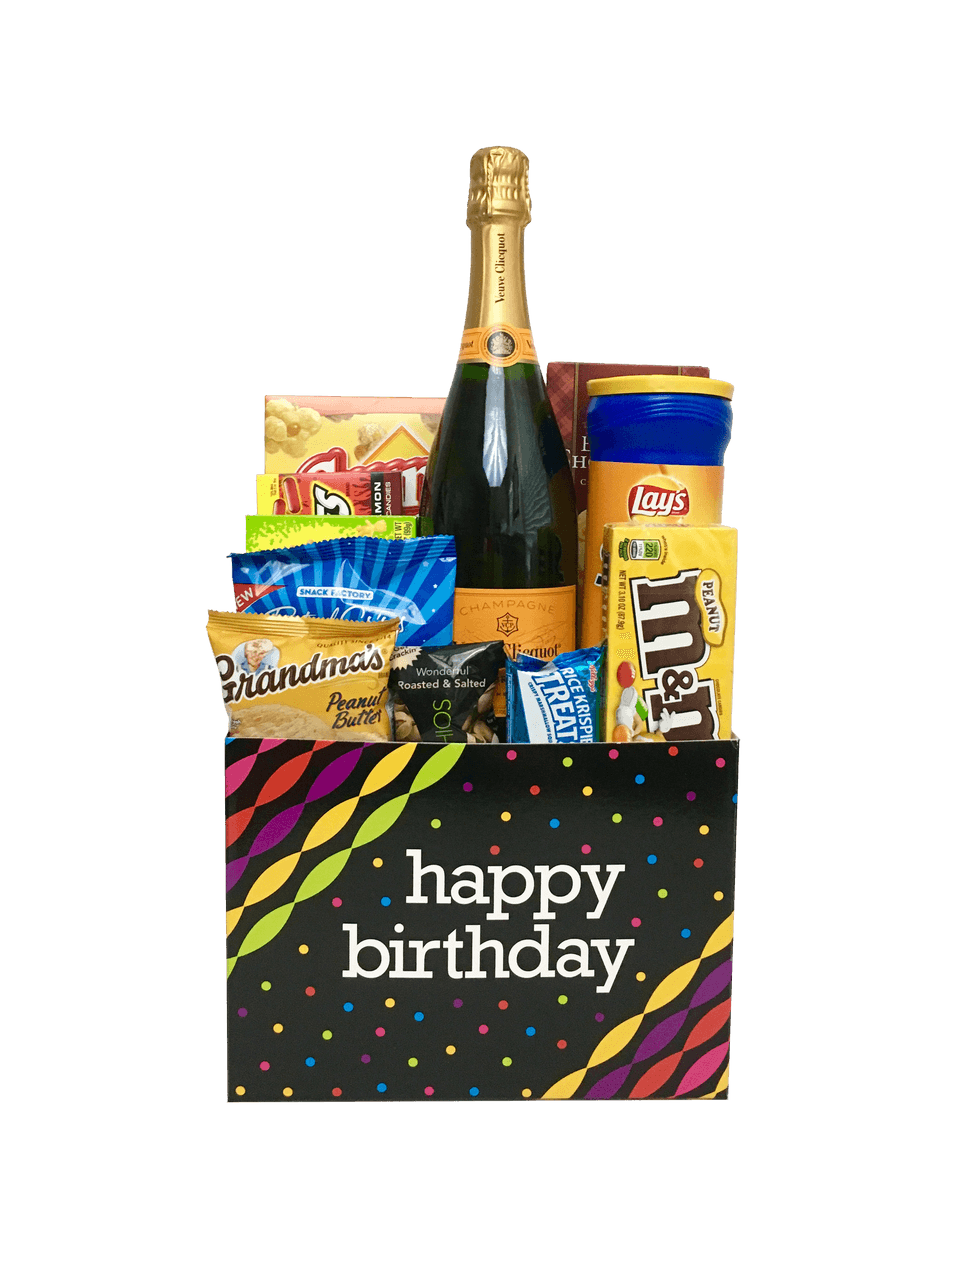 f0b40119a2ec5 Champagne Life Gift Baskets - Vegas   1 Same-Day Gift Basket Delivery